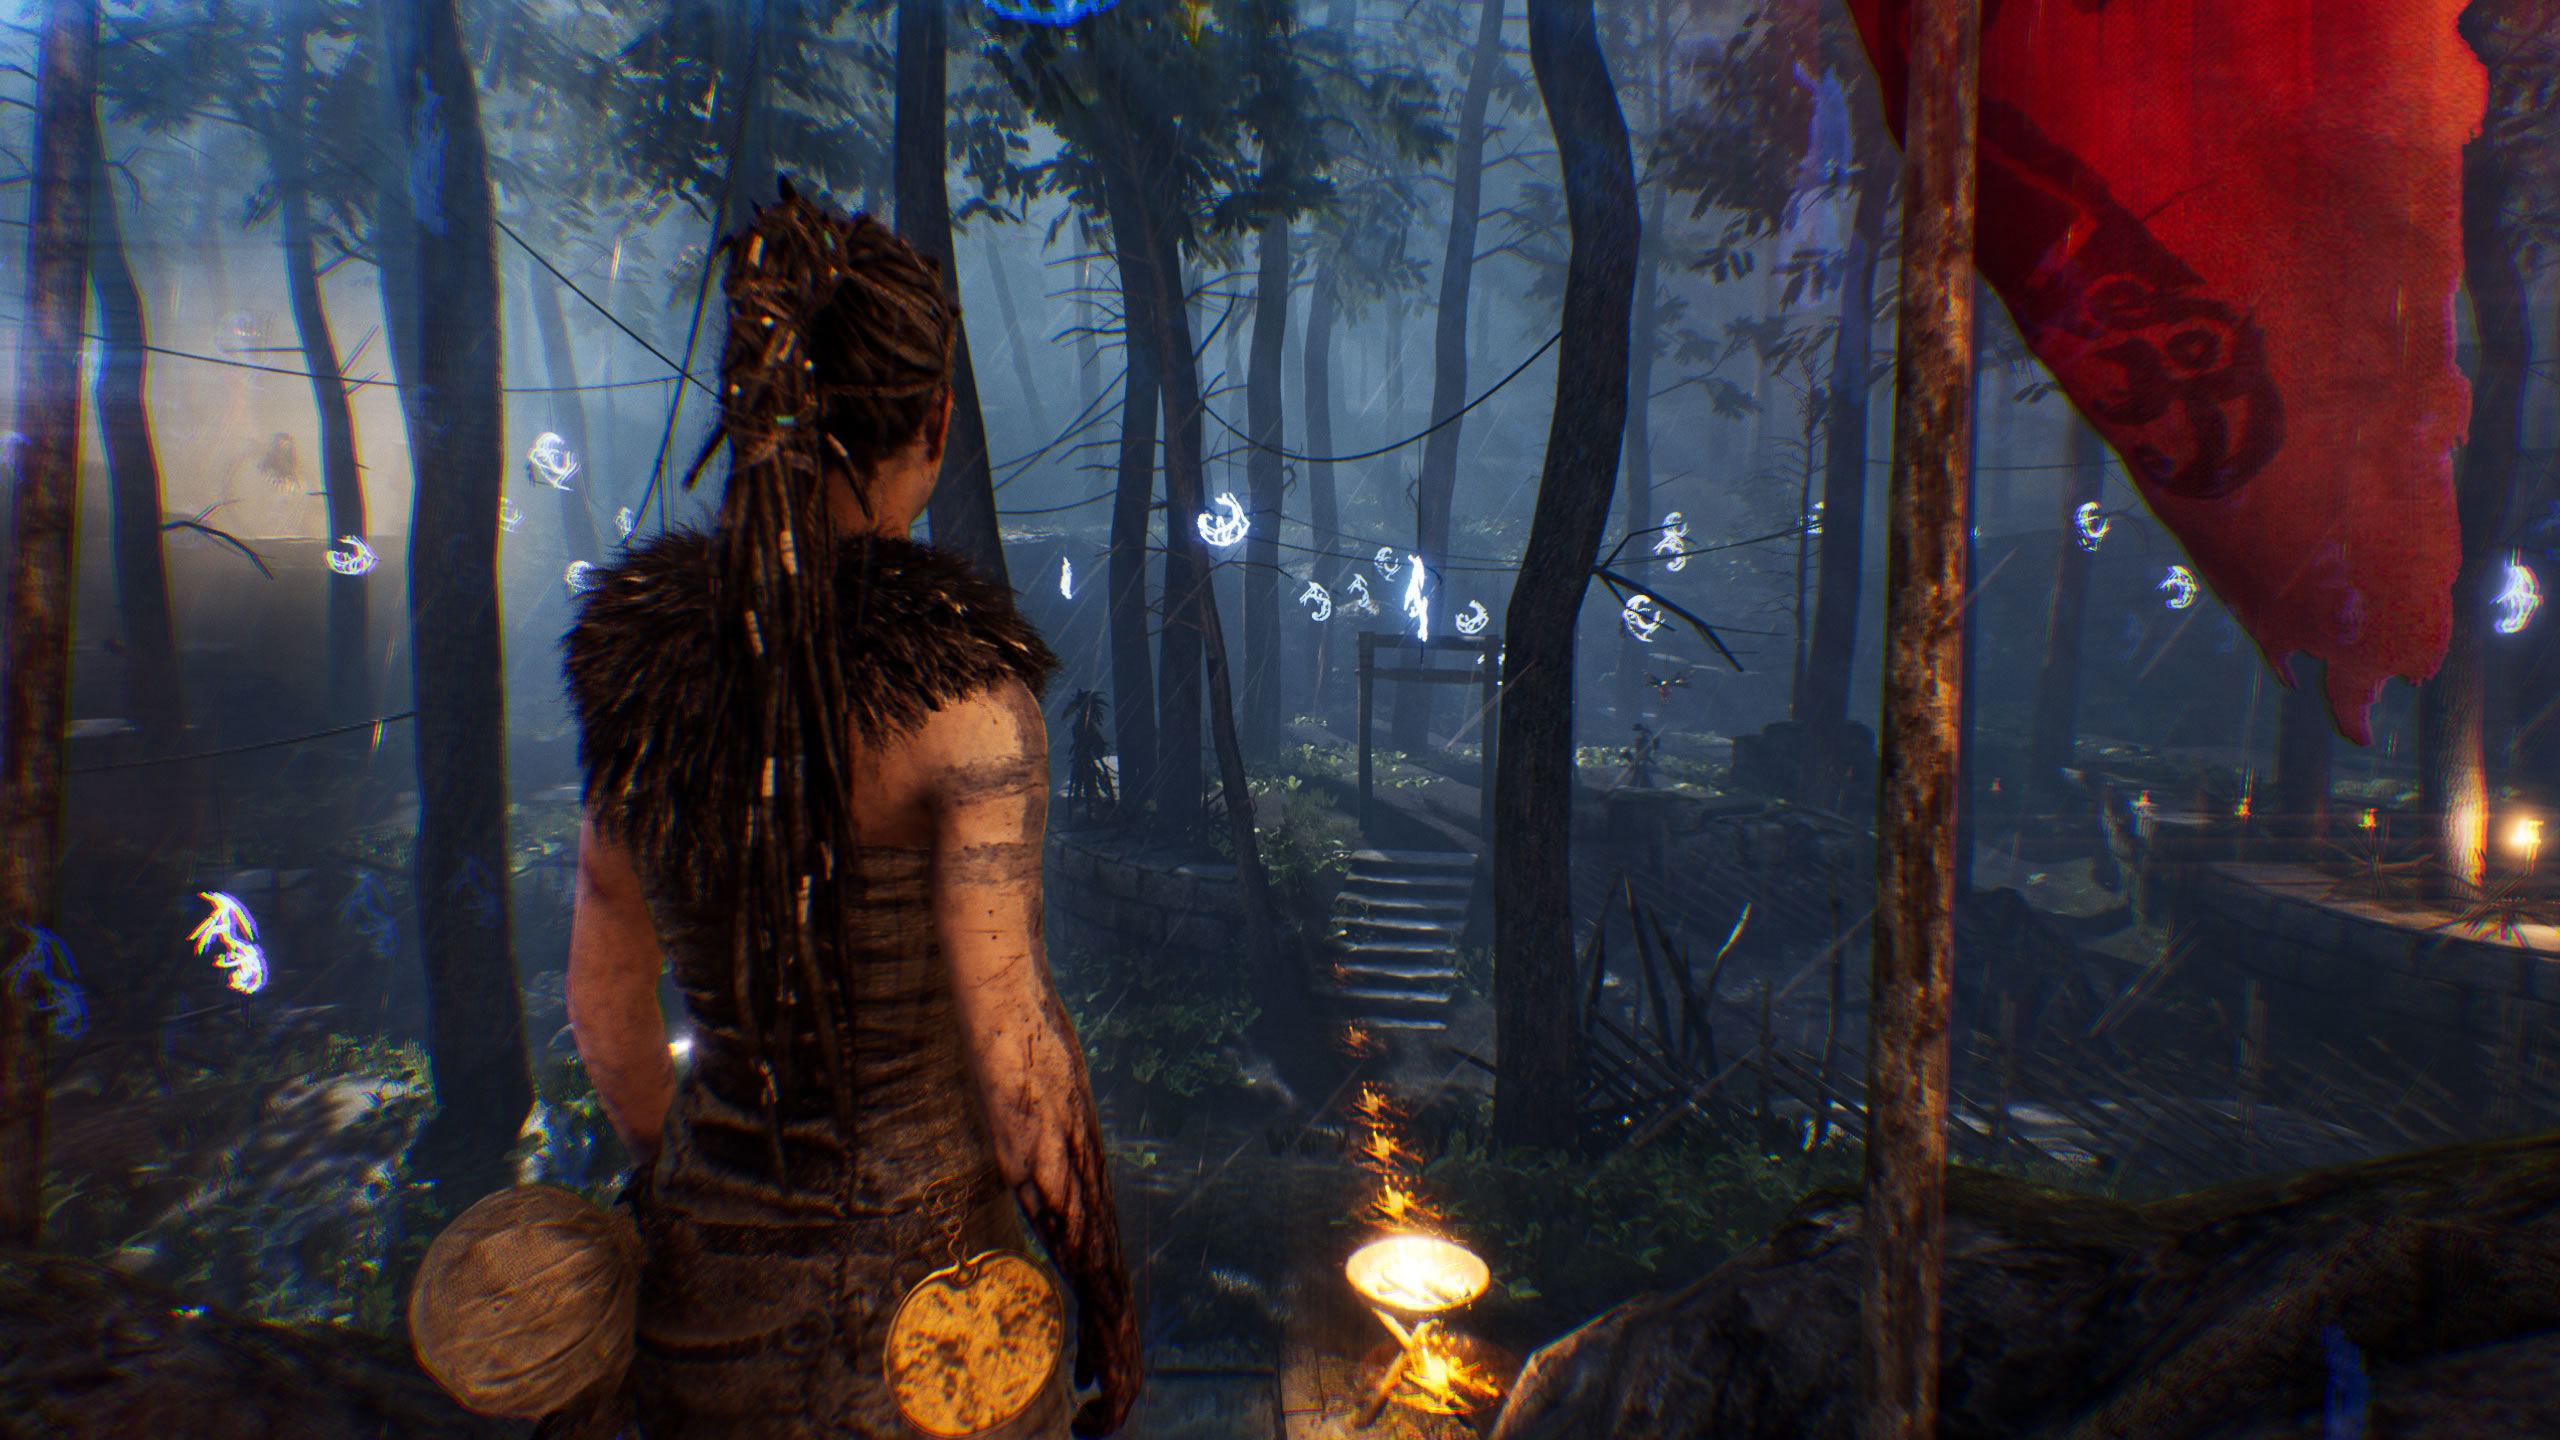 Senua in the woods with many hanging, glowing symbols